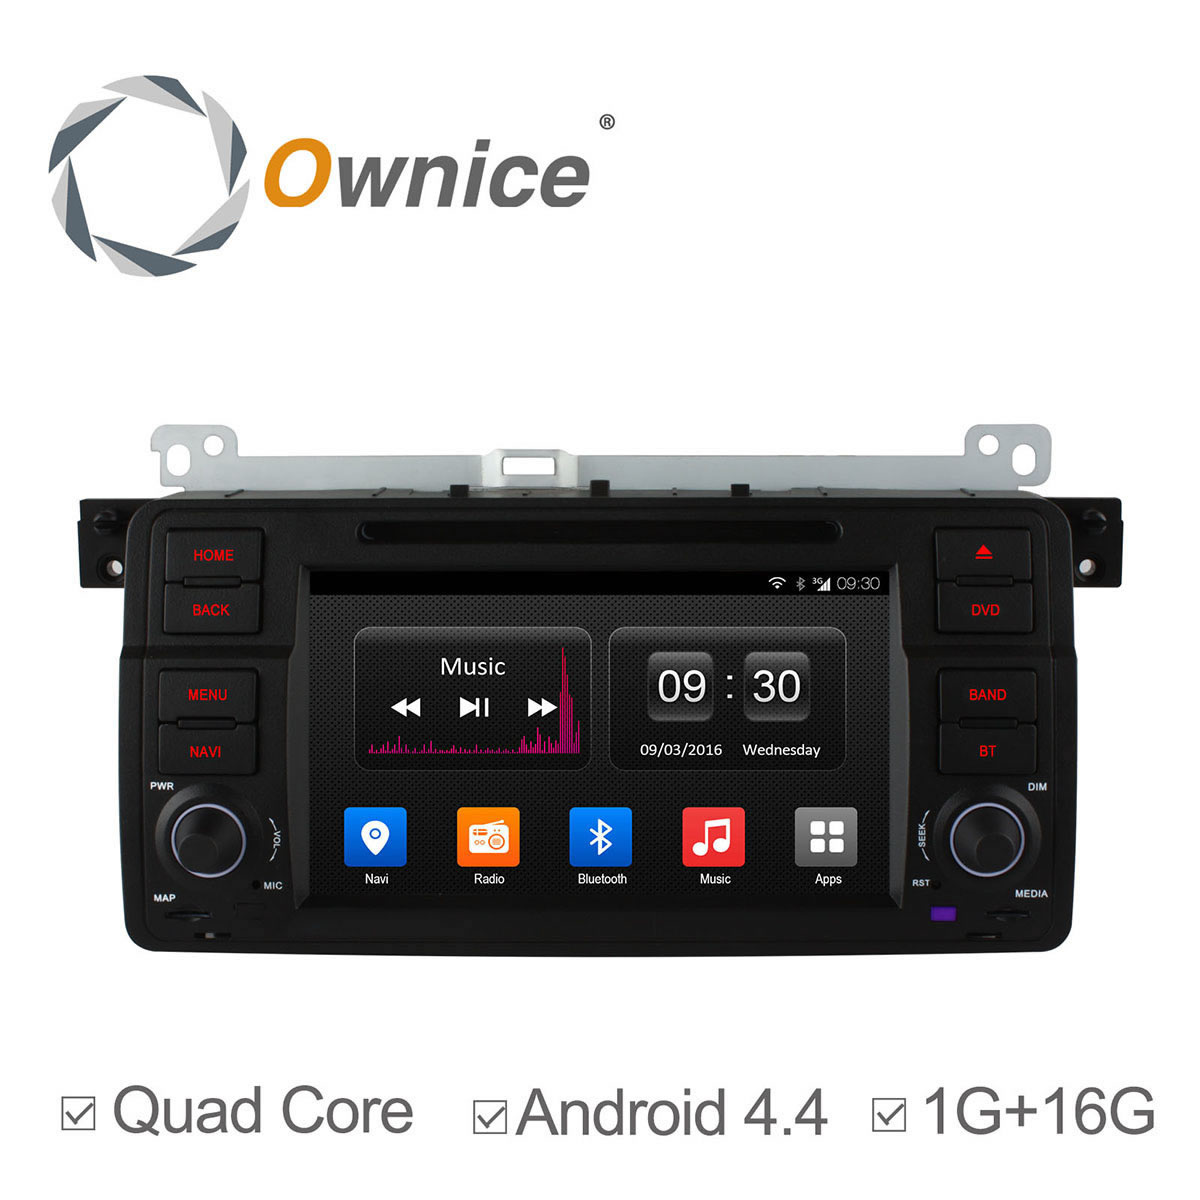 Aliexpress Com Buy Mekede 1024 600 10 Android 7 1 Car Dvd Player For Mazda 6 2008 2009 2010: Buy 7 Inch Silver Panel Android 4.4.4 Quad Core Car DVD GPS Radio Head Unit Opel Zafira(2005